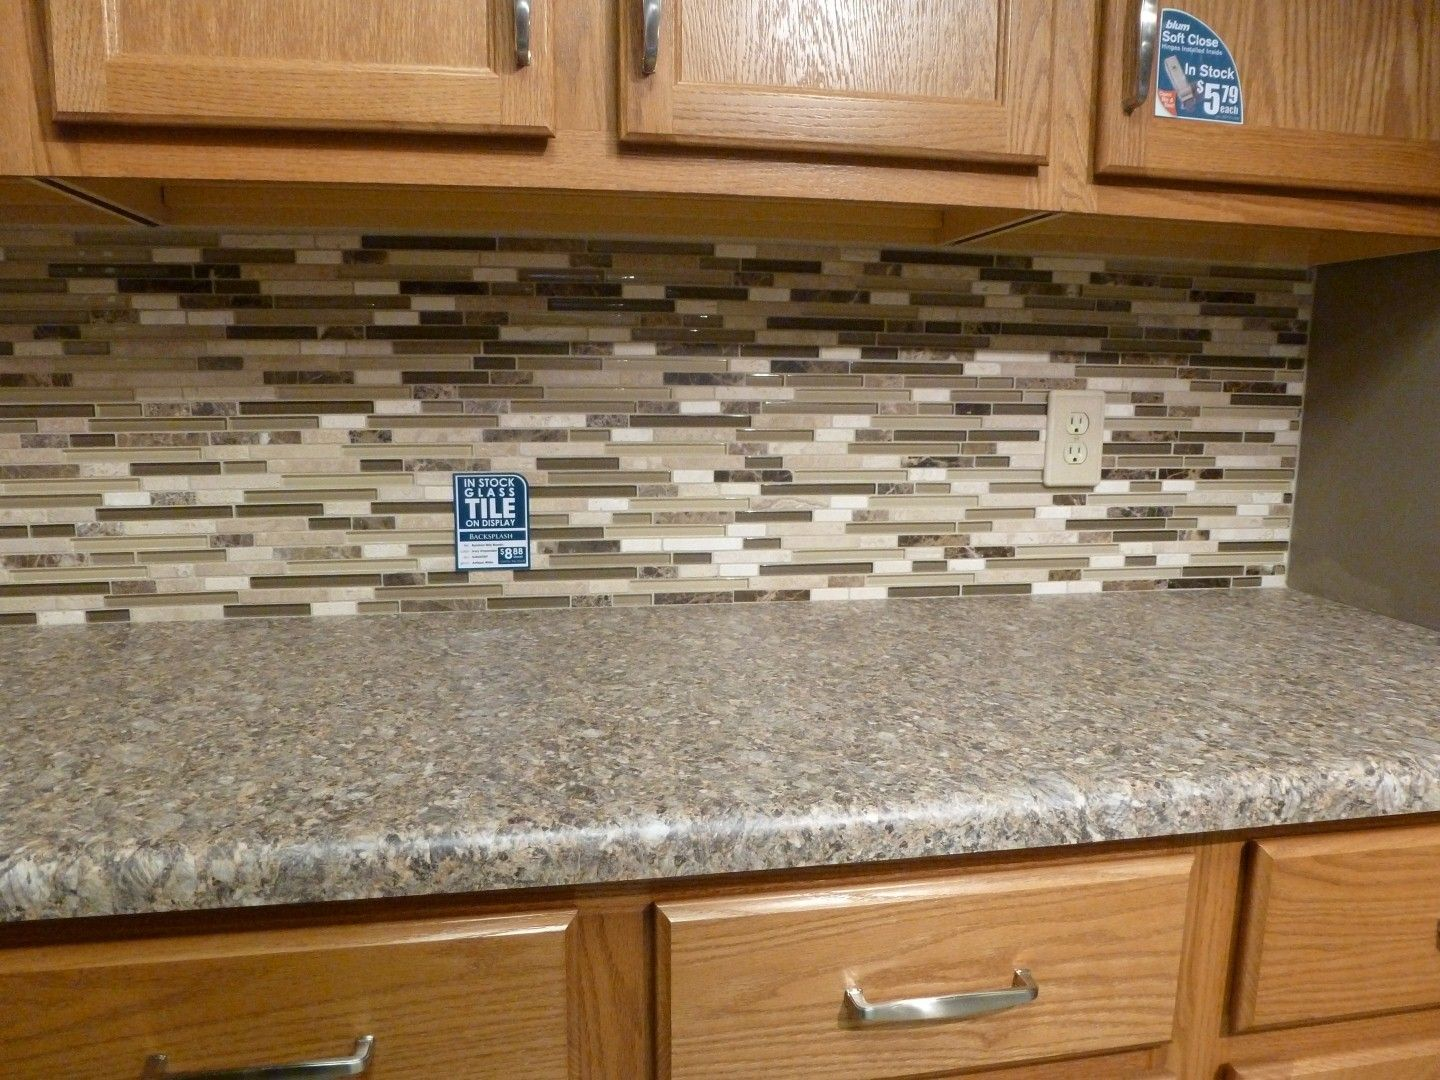 Mosaic kitchen tile backsplash ideas 2565 for Kitchen backsplash tile patterns